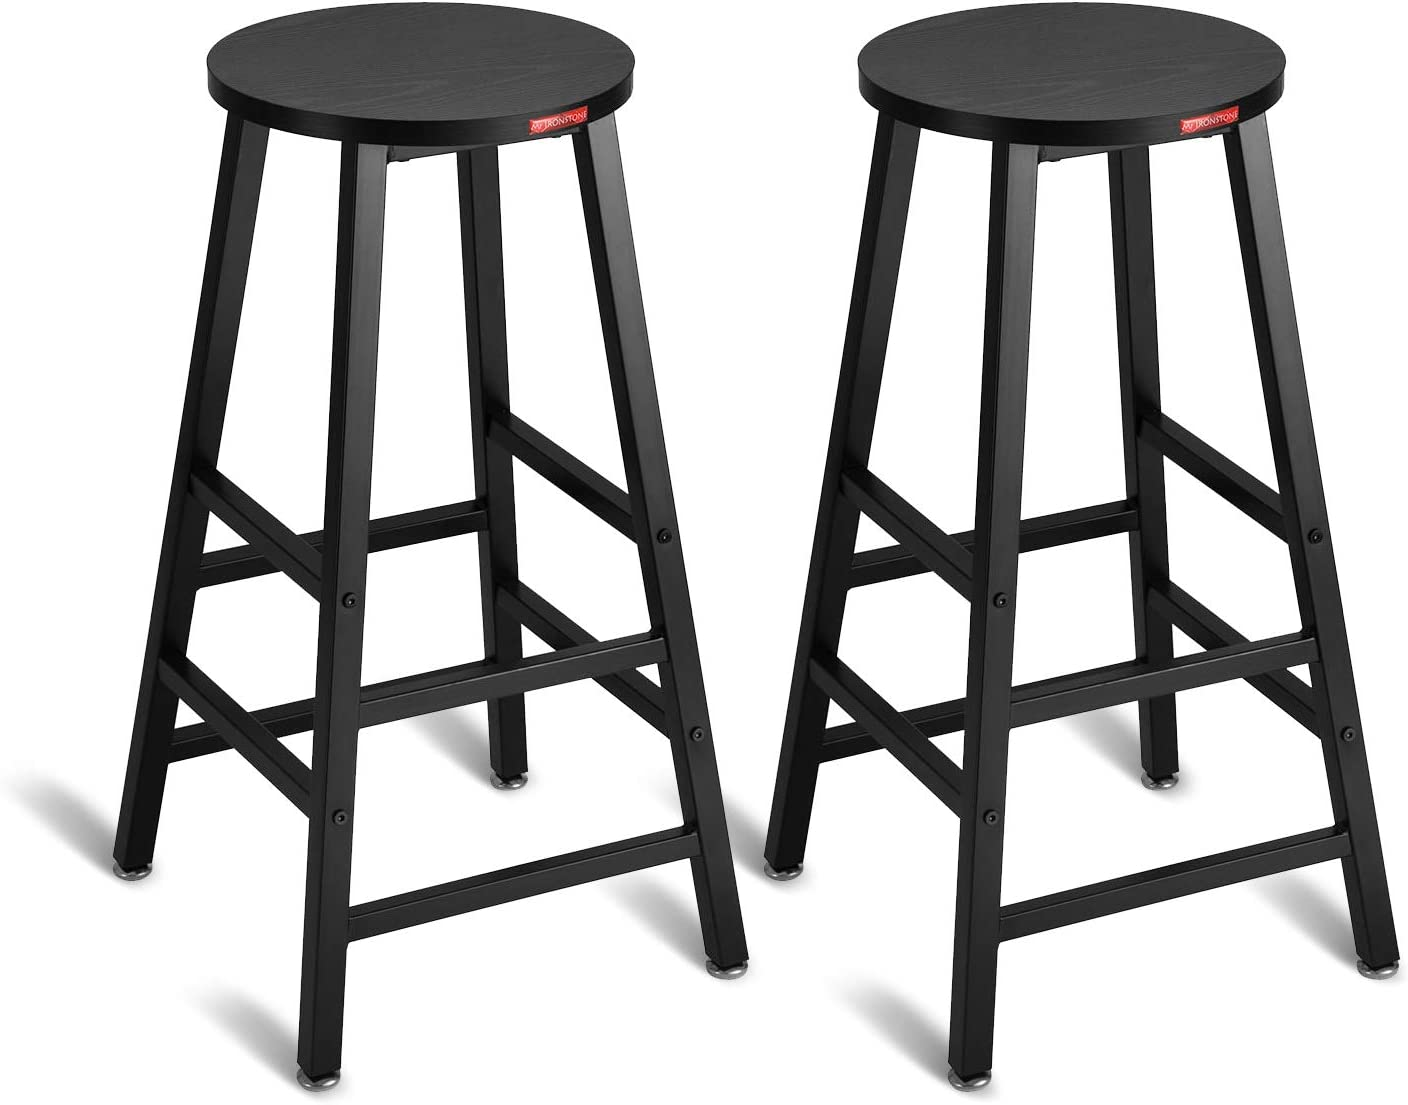 "Mr IRONSTONE Pub Height Bar Stools Set of 2 , 27.7"" Pub Dining Height Stools Bistro Table Chairs (Black)"